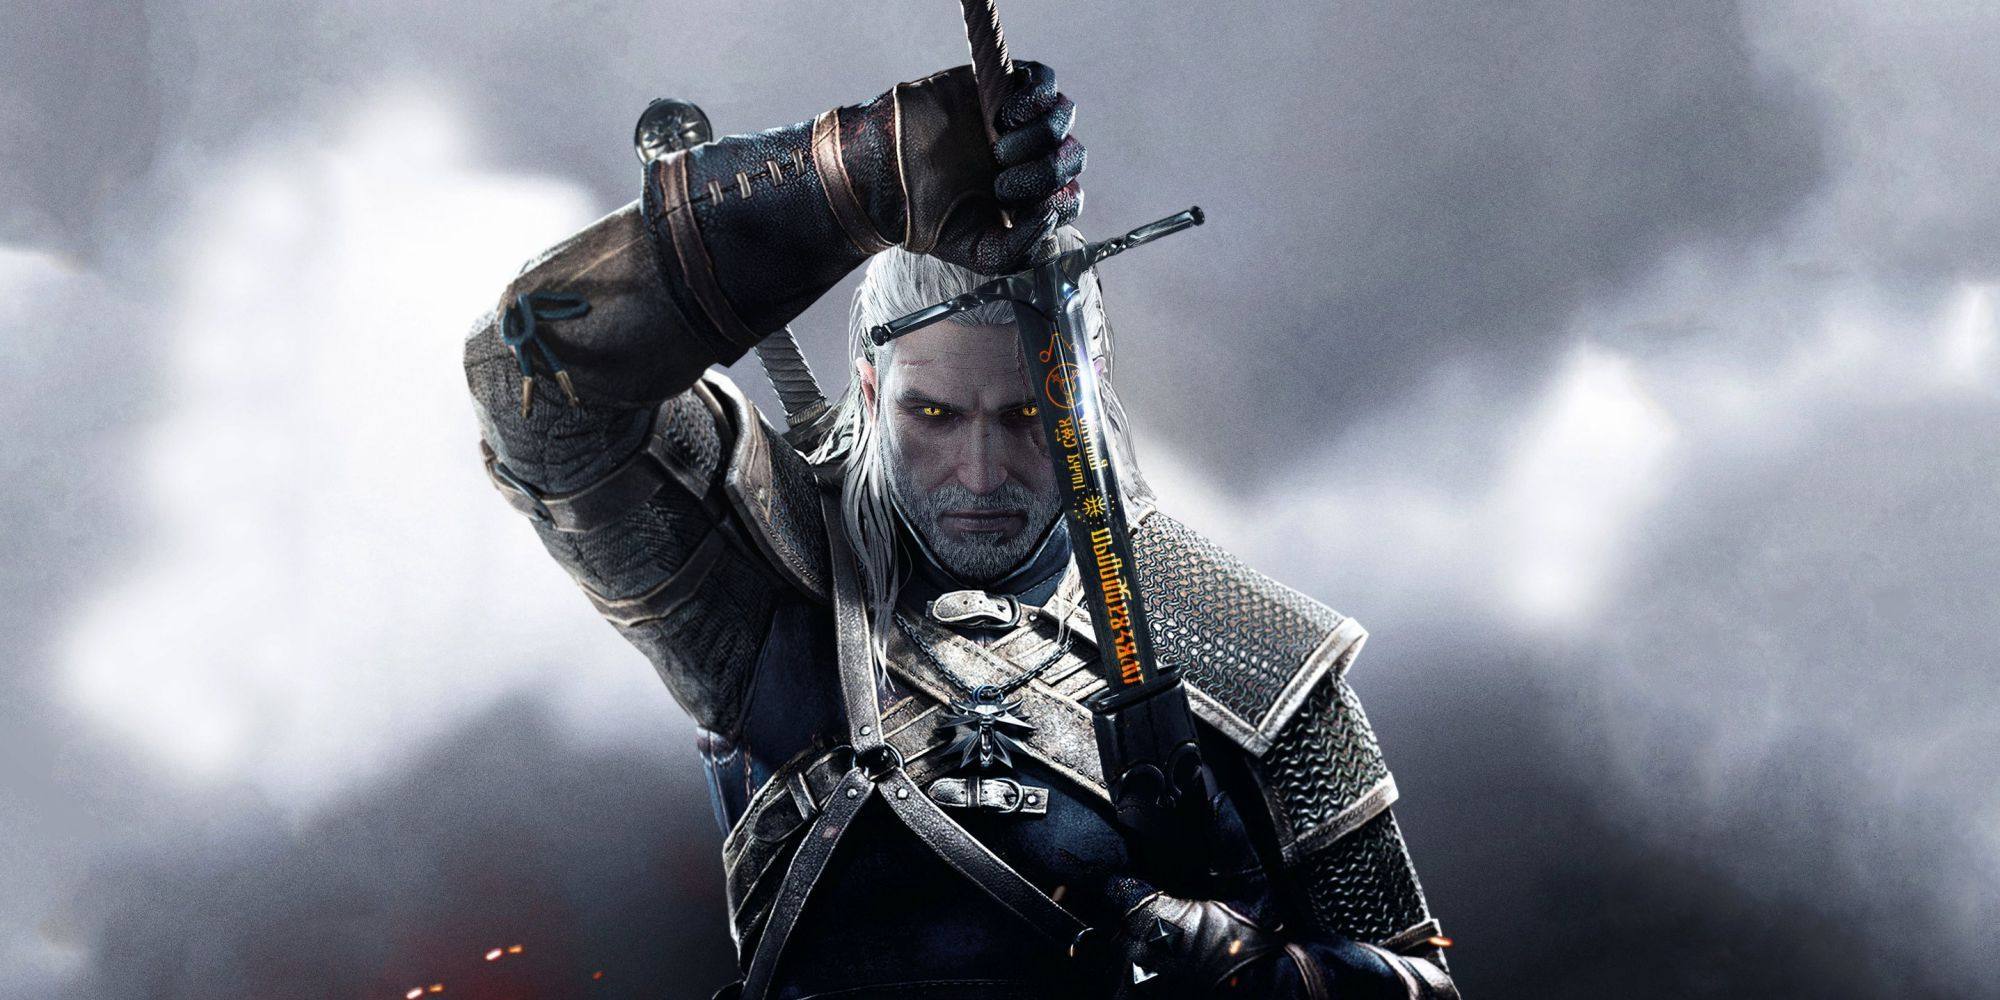 The Witcher 4 Won't Happen Says CD Projekt Red | Screen Rant